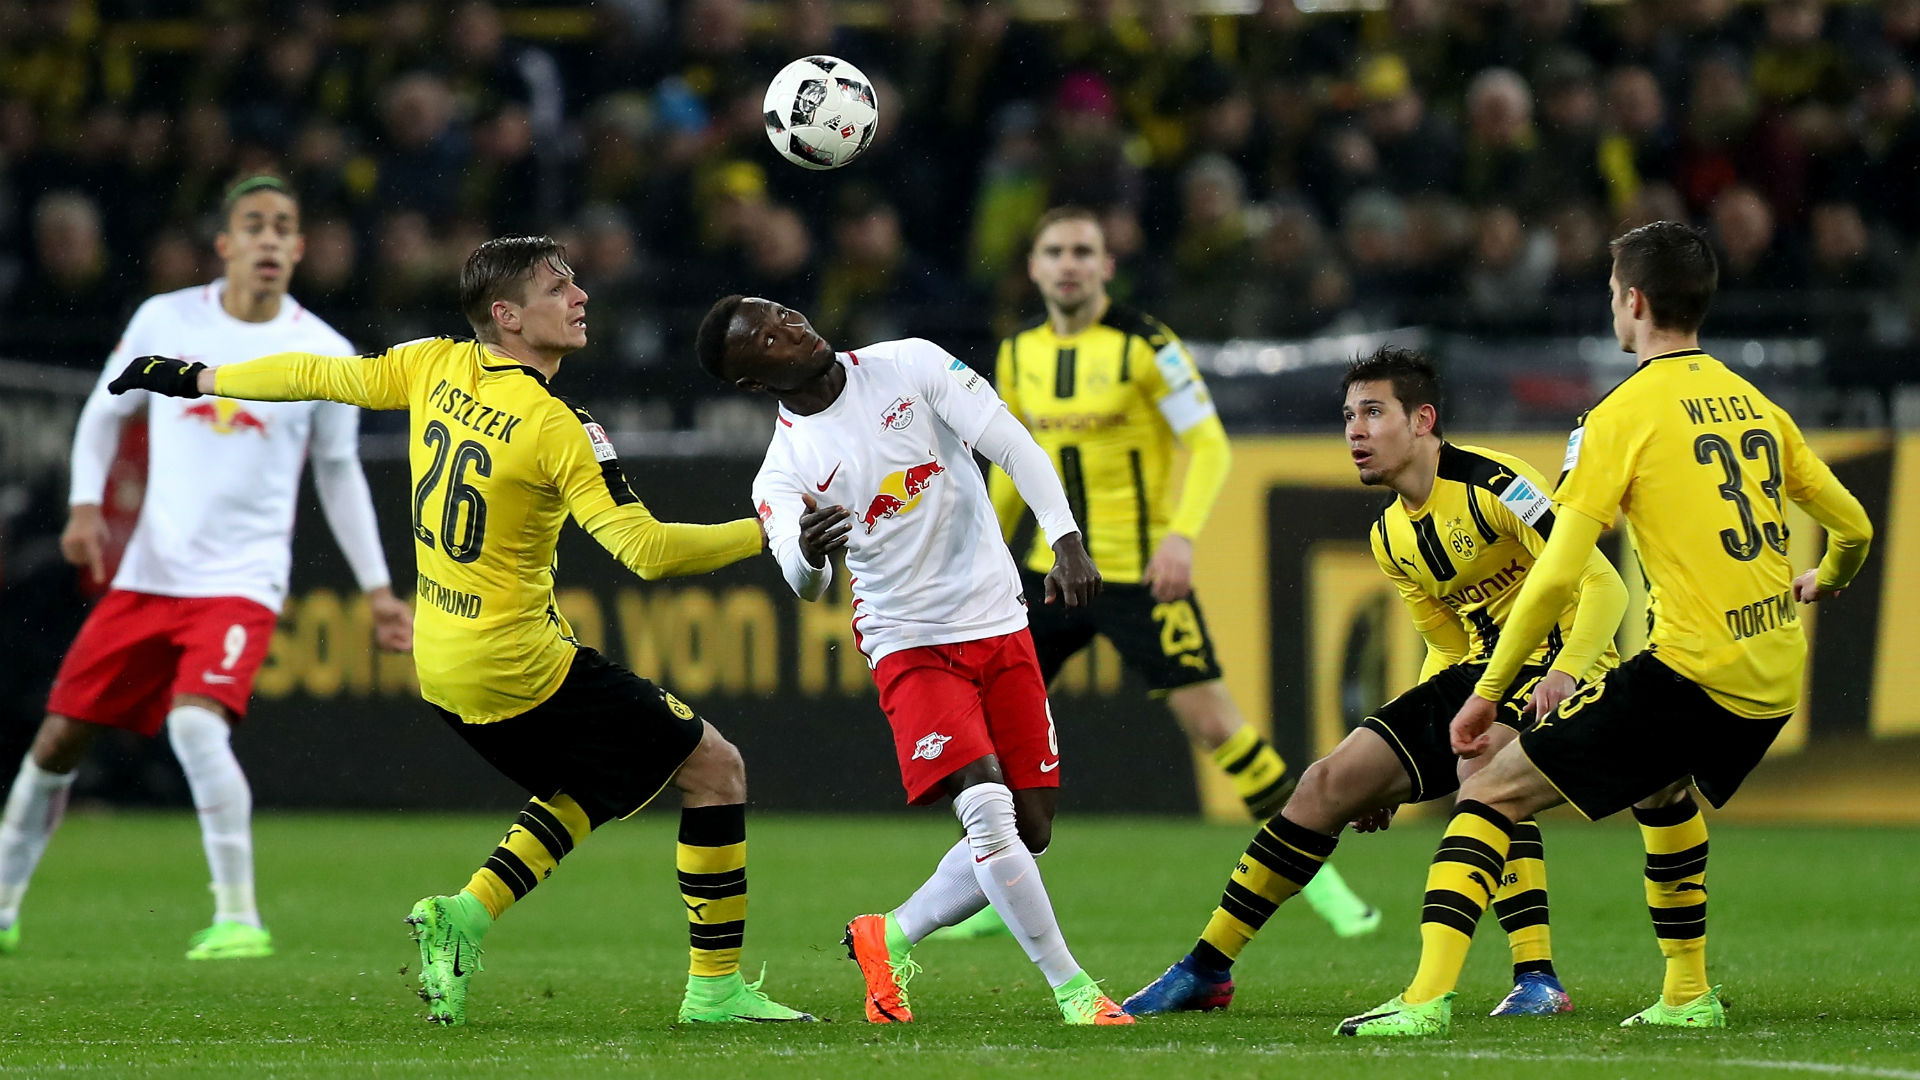 RB Leipzig vs Borussia Dortmund: Prediction, Lineups, Team News, Betting Tips & Match Previews